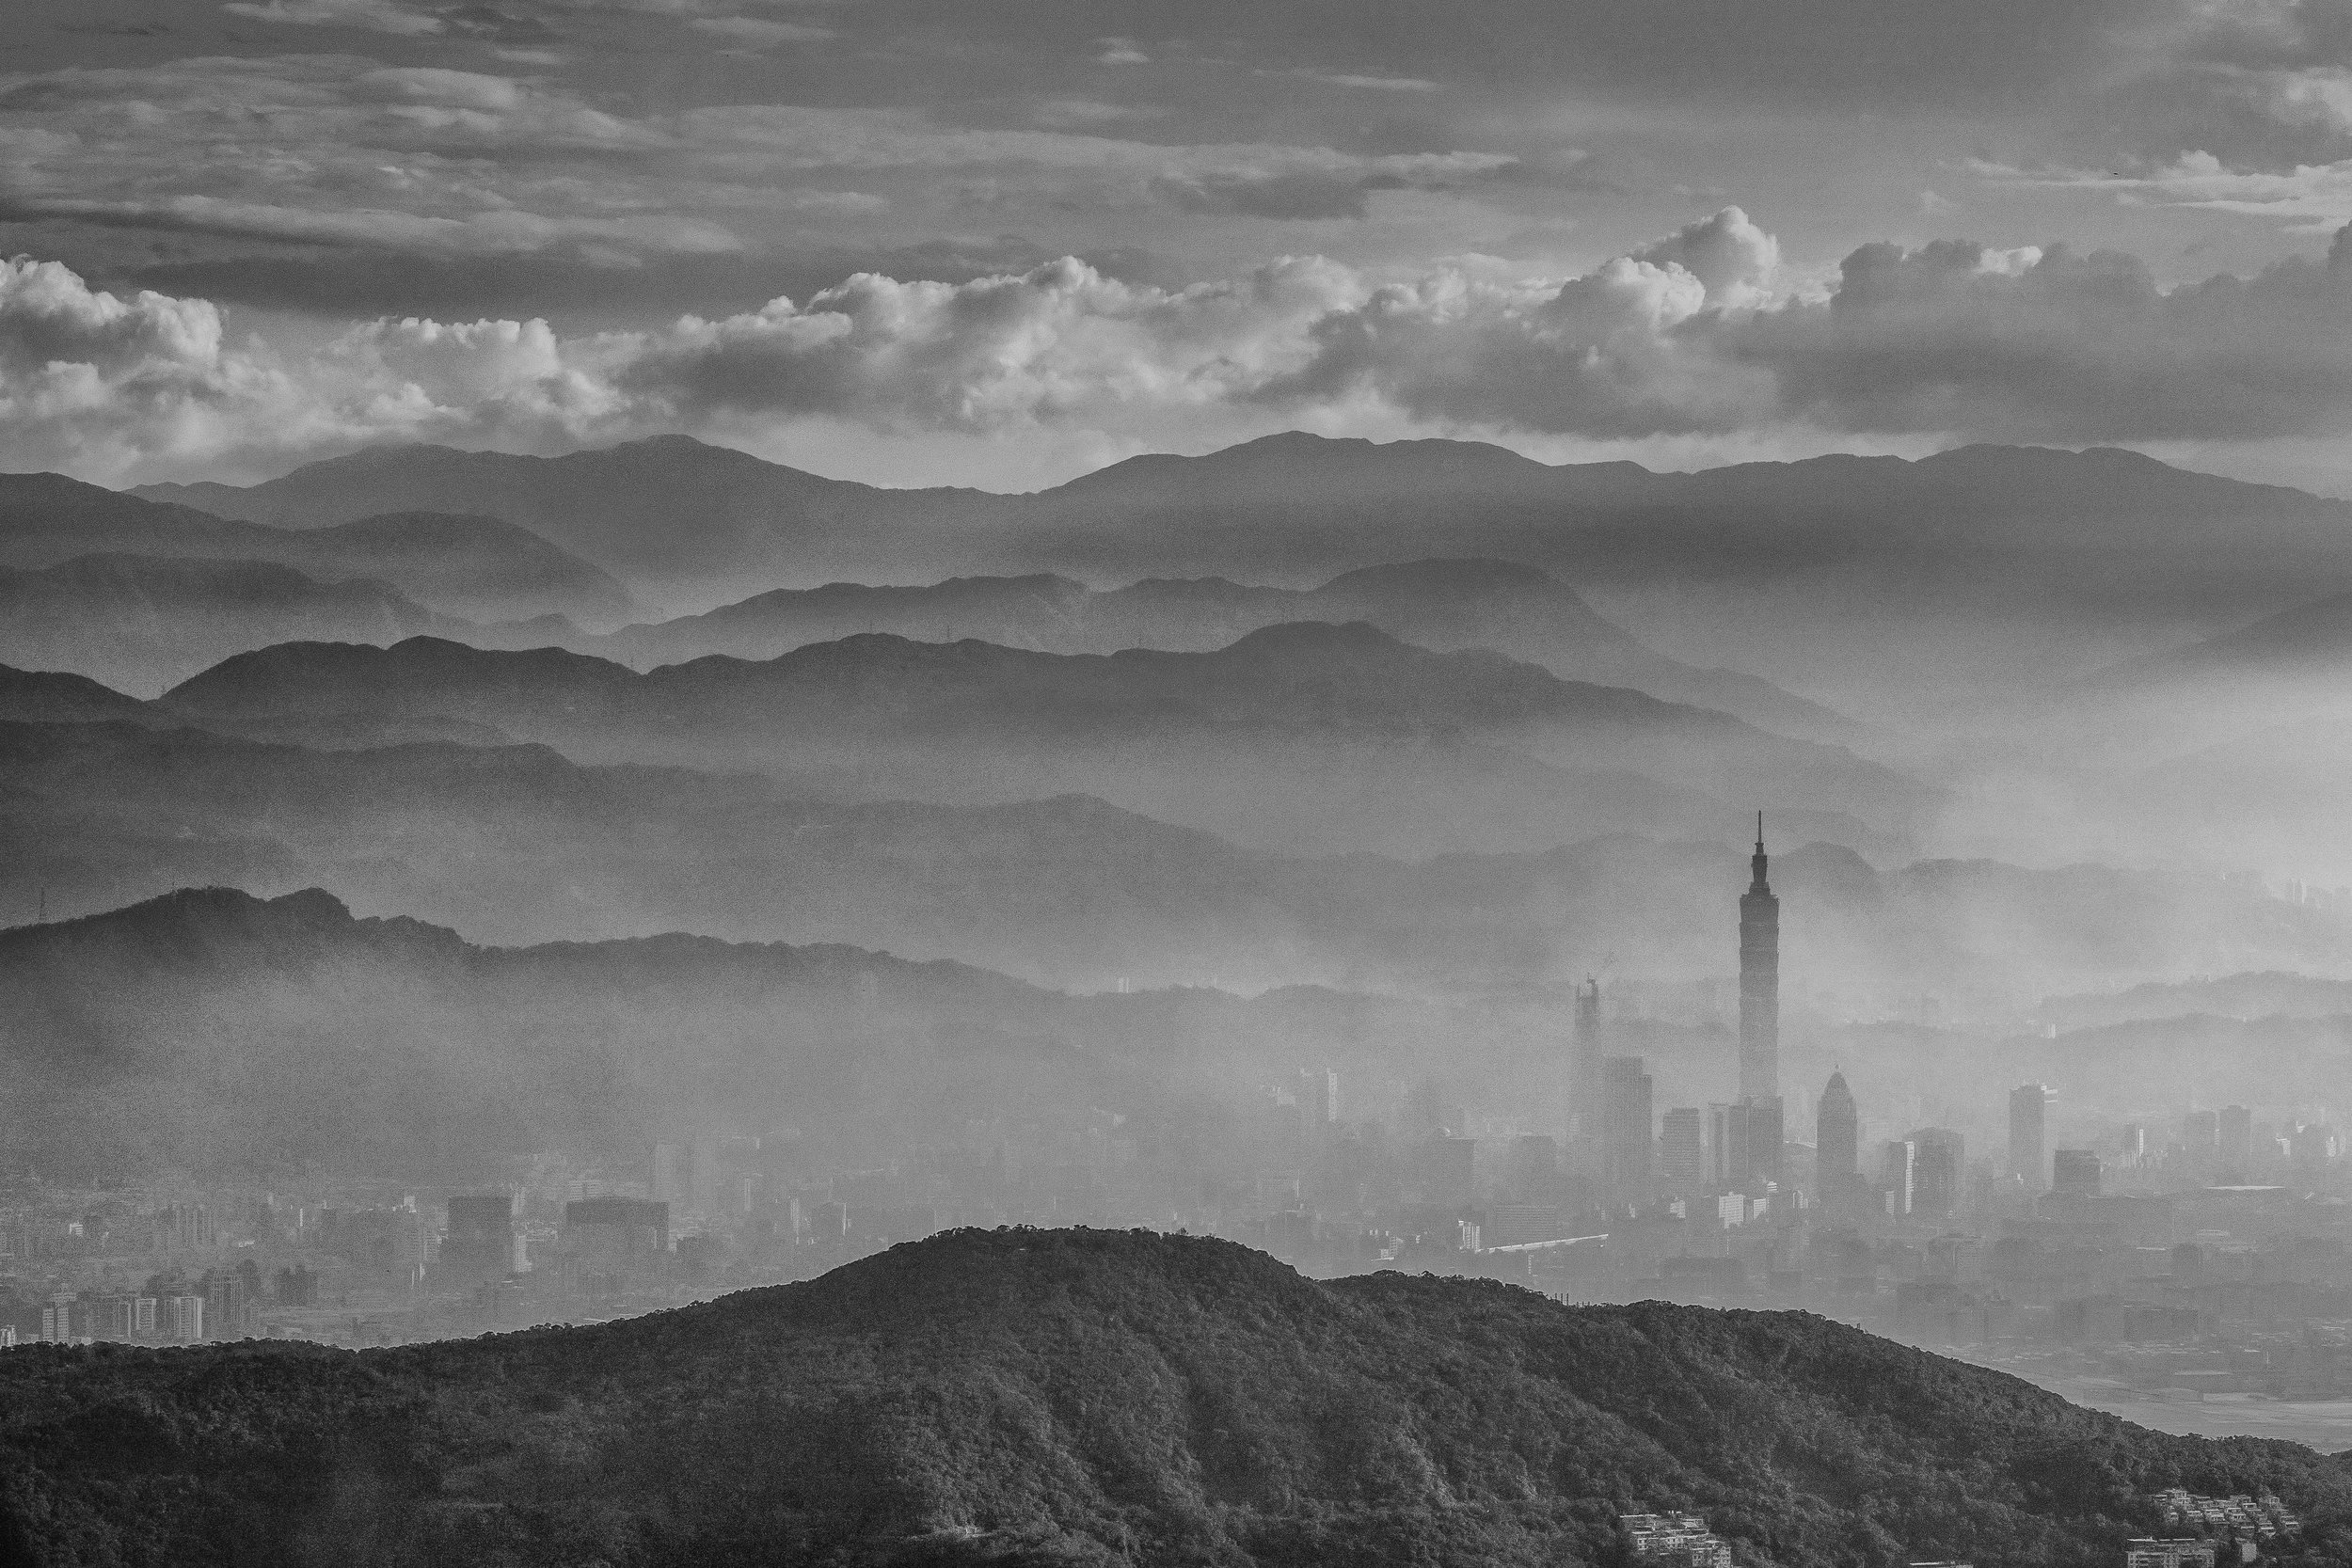 101 rising up out of the smog. f11, ISO 100, 1/100, 150mm